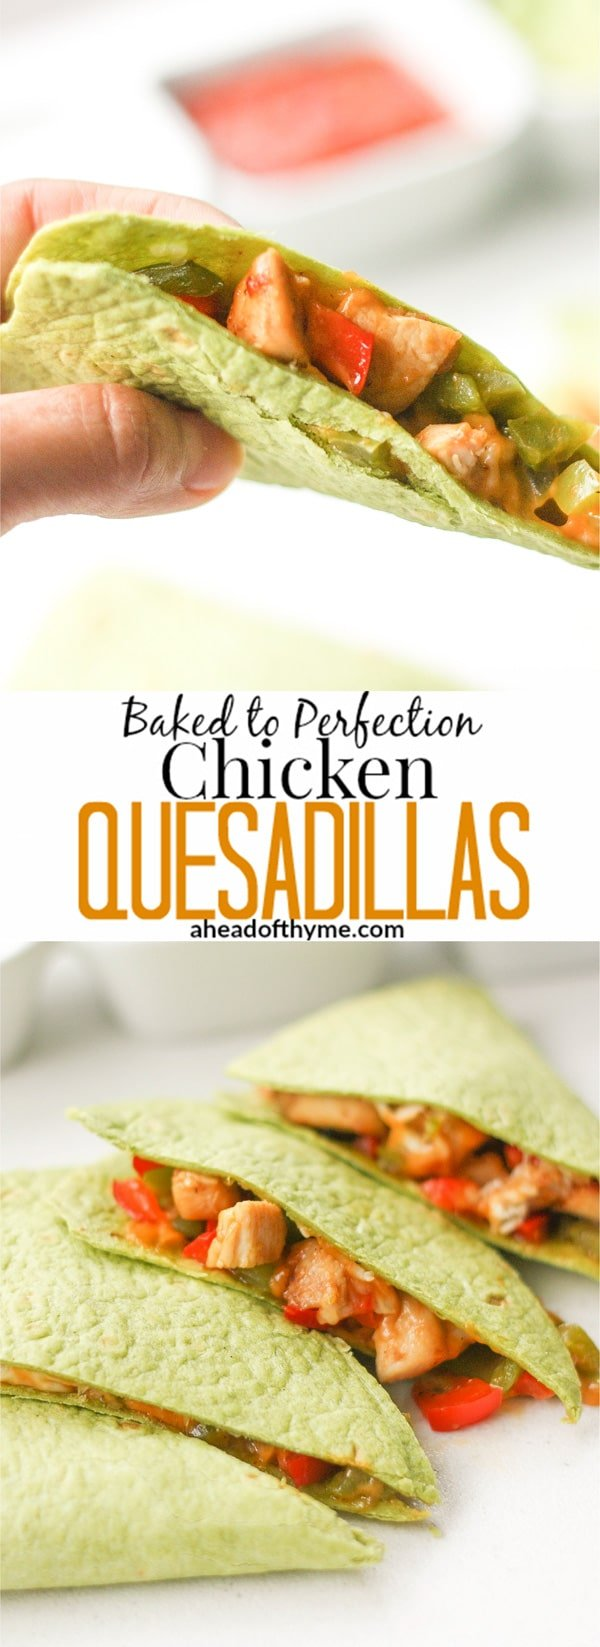 Baked to Perfection Chicken Quesadillas: So quick and easy to make, these quesadillas will become a go-to recipe that you and your kids will love | aheadofthyme.com